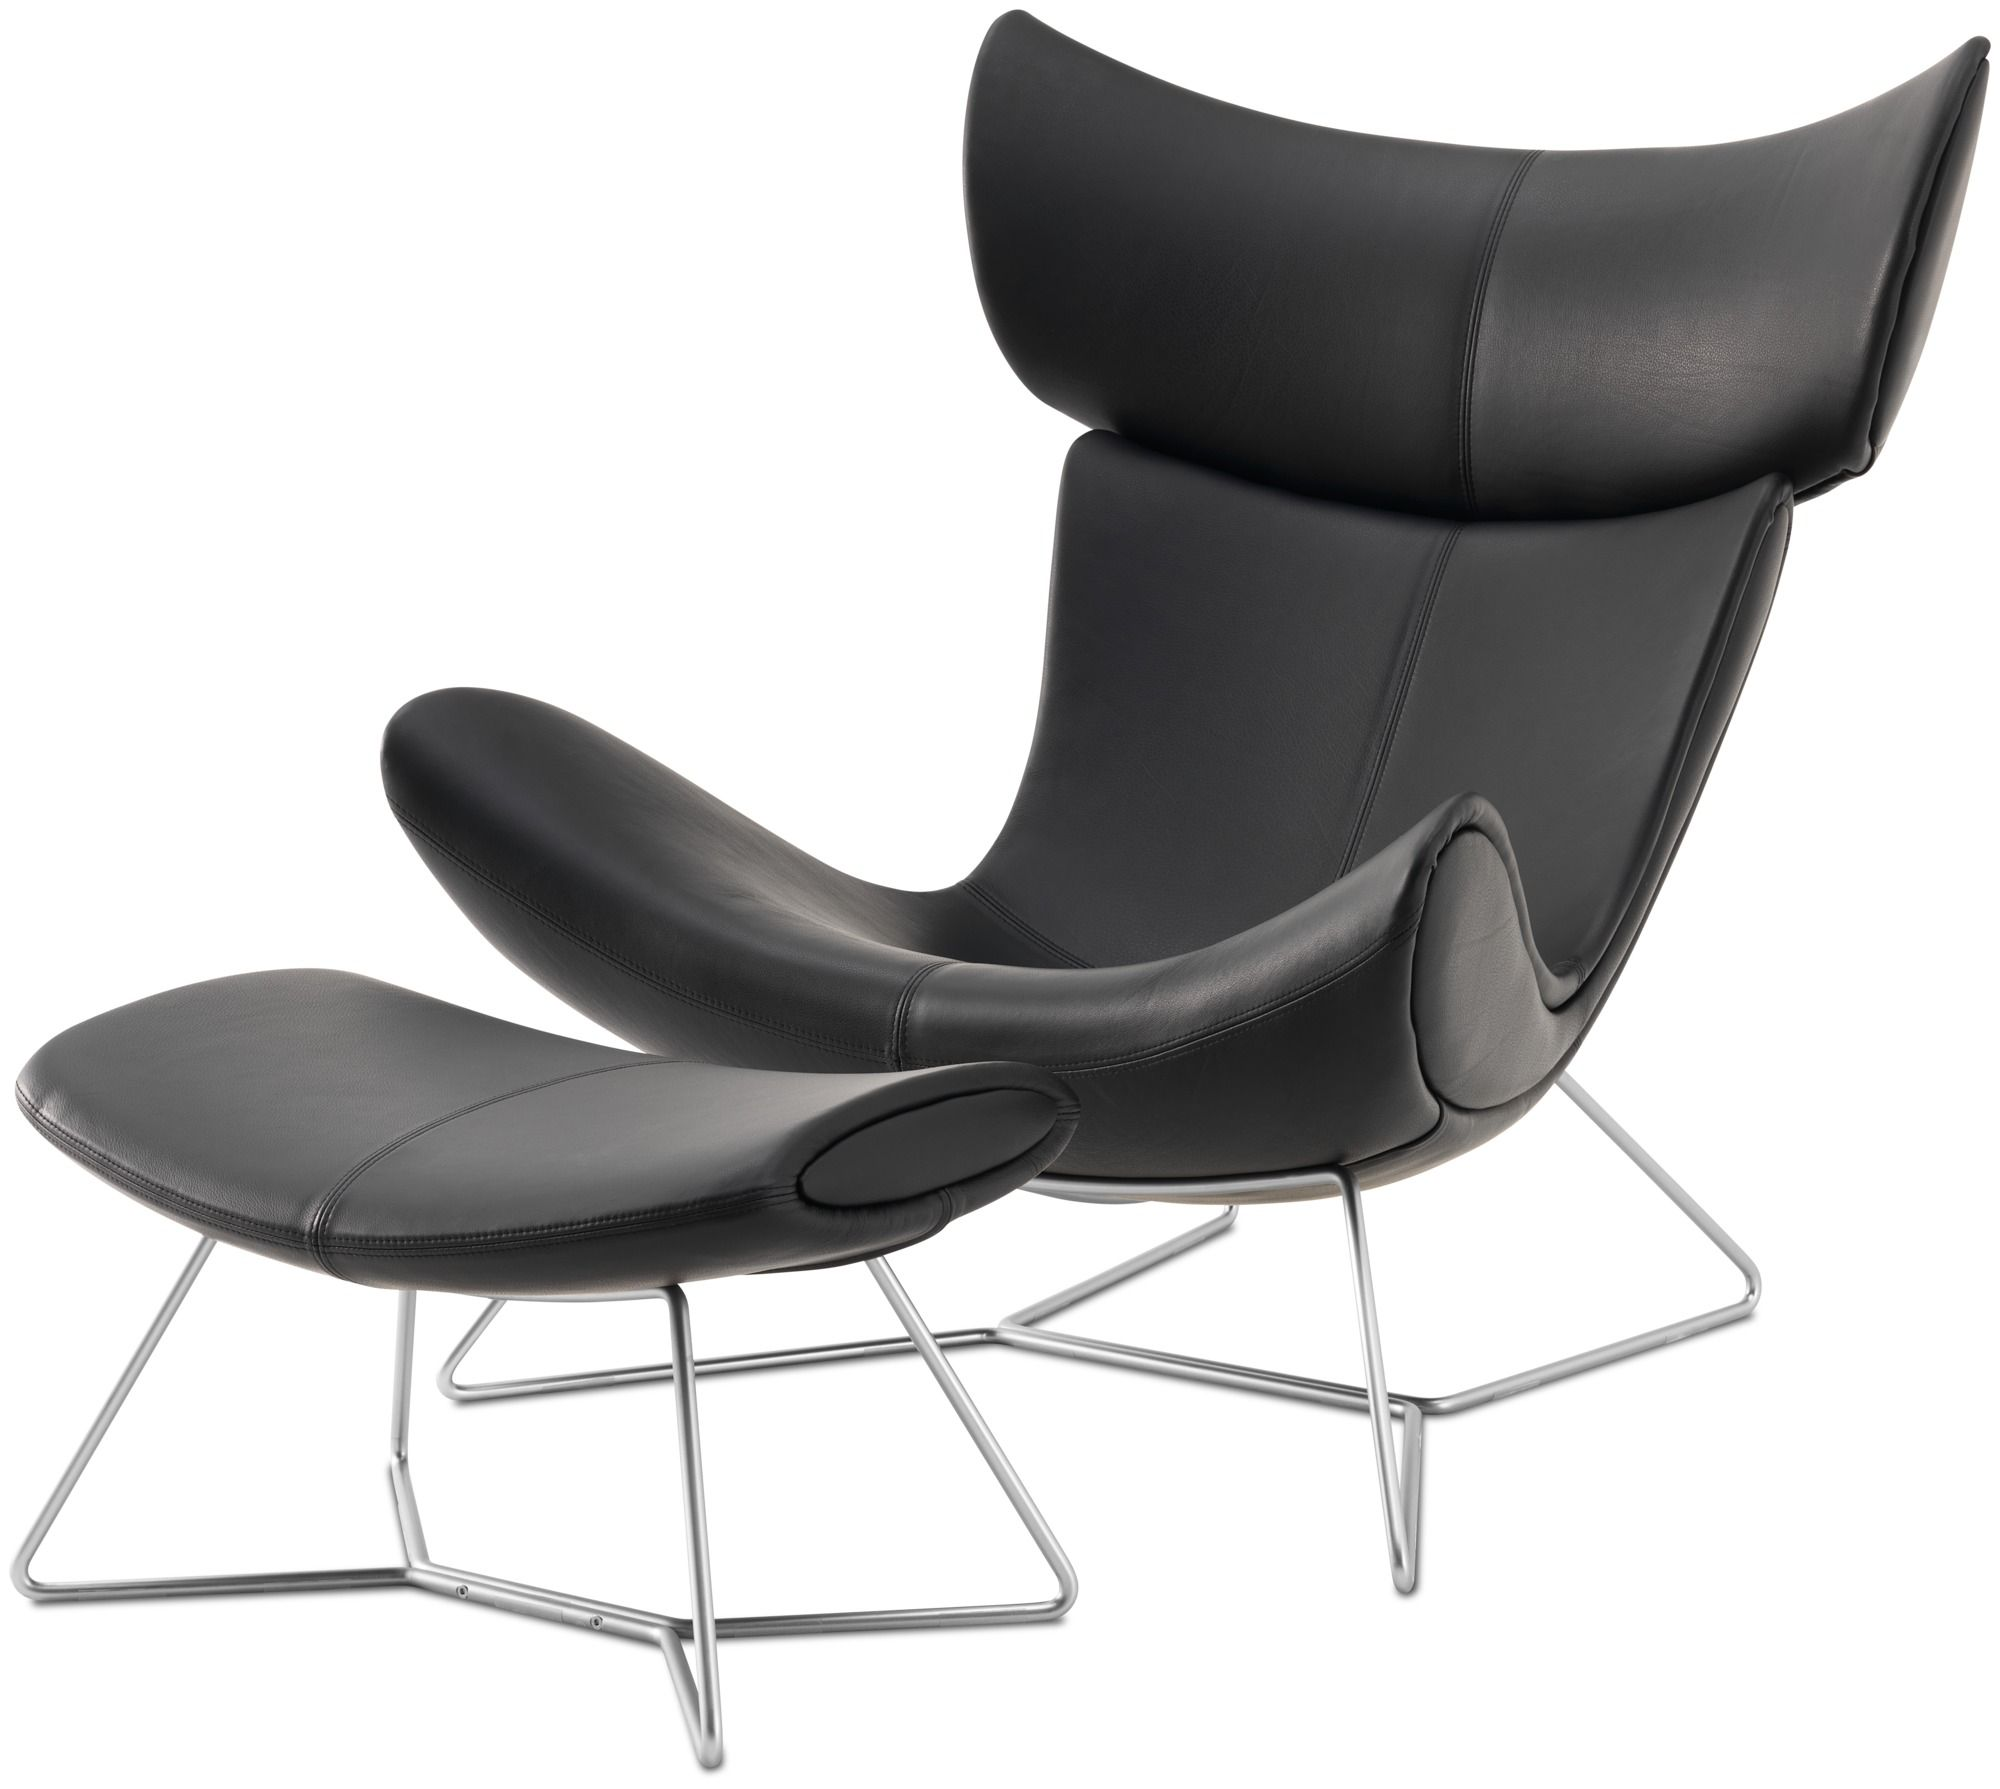 Armchairs from the BoConcept collection | 休闲椅 | Pinterest ...